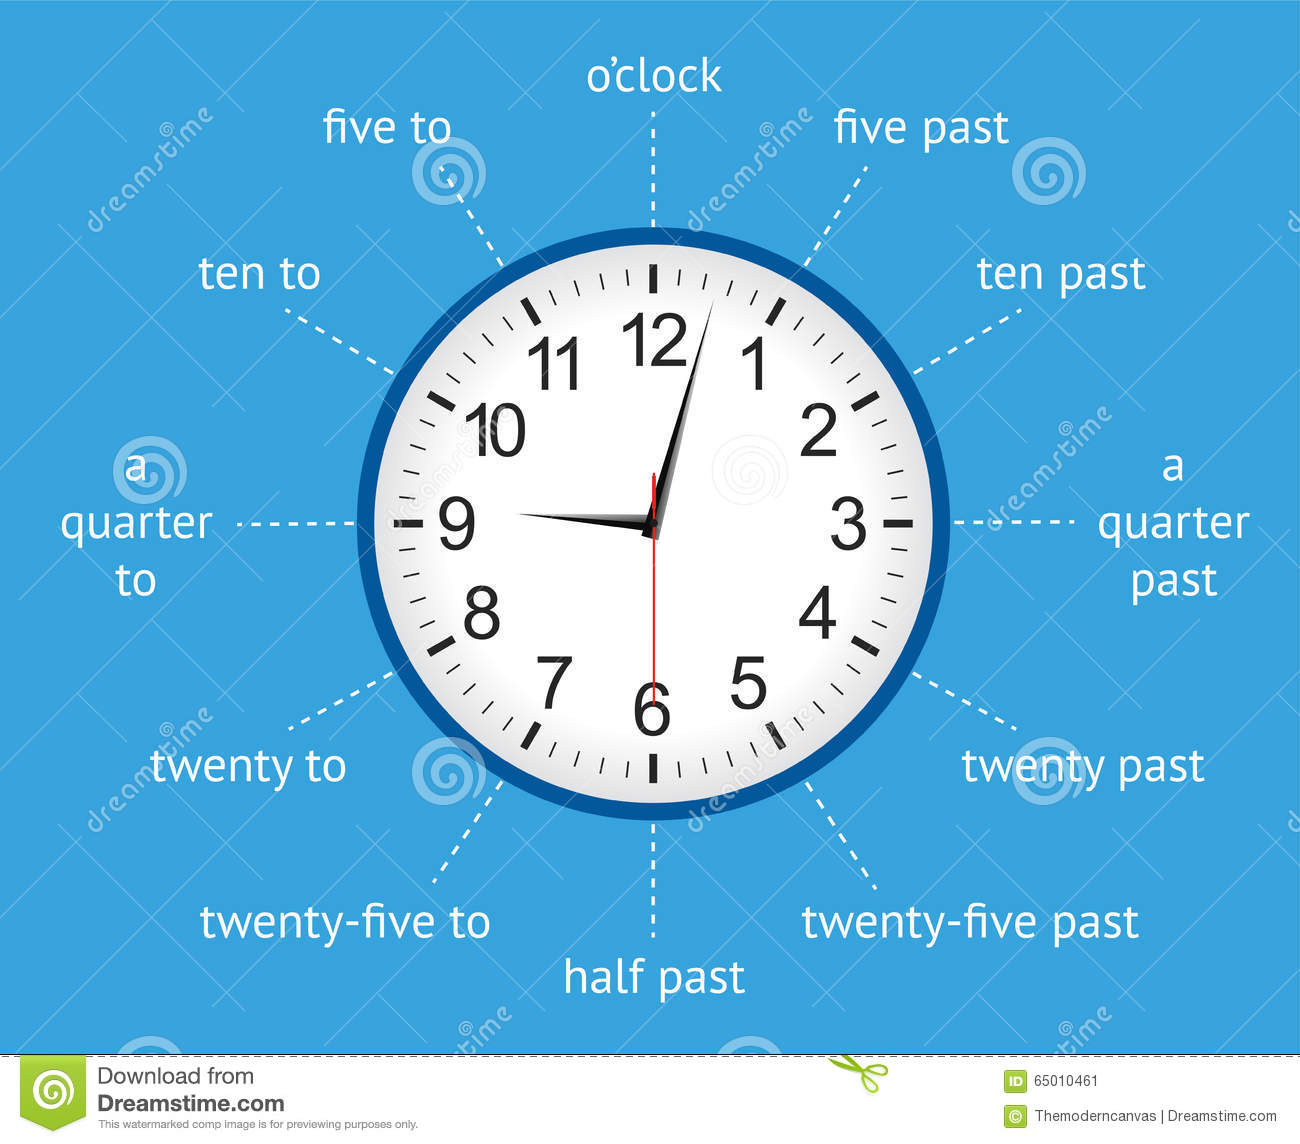 Learn To Tell The Time With Anogue Clock Infographic